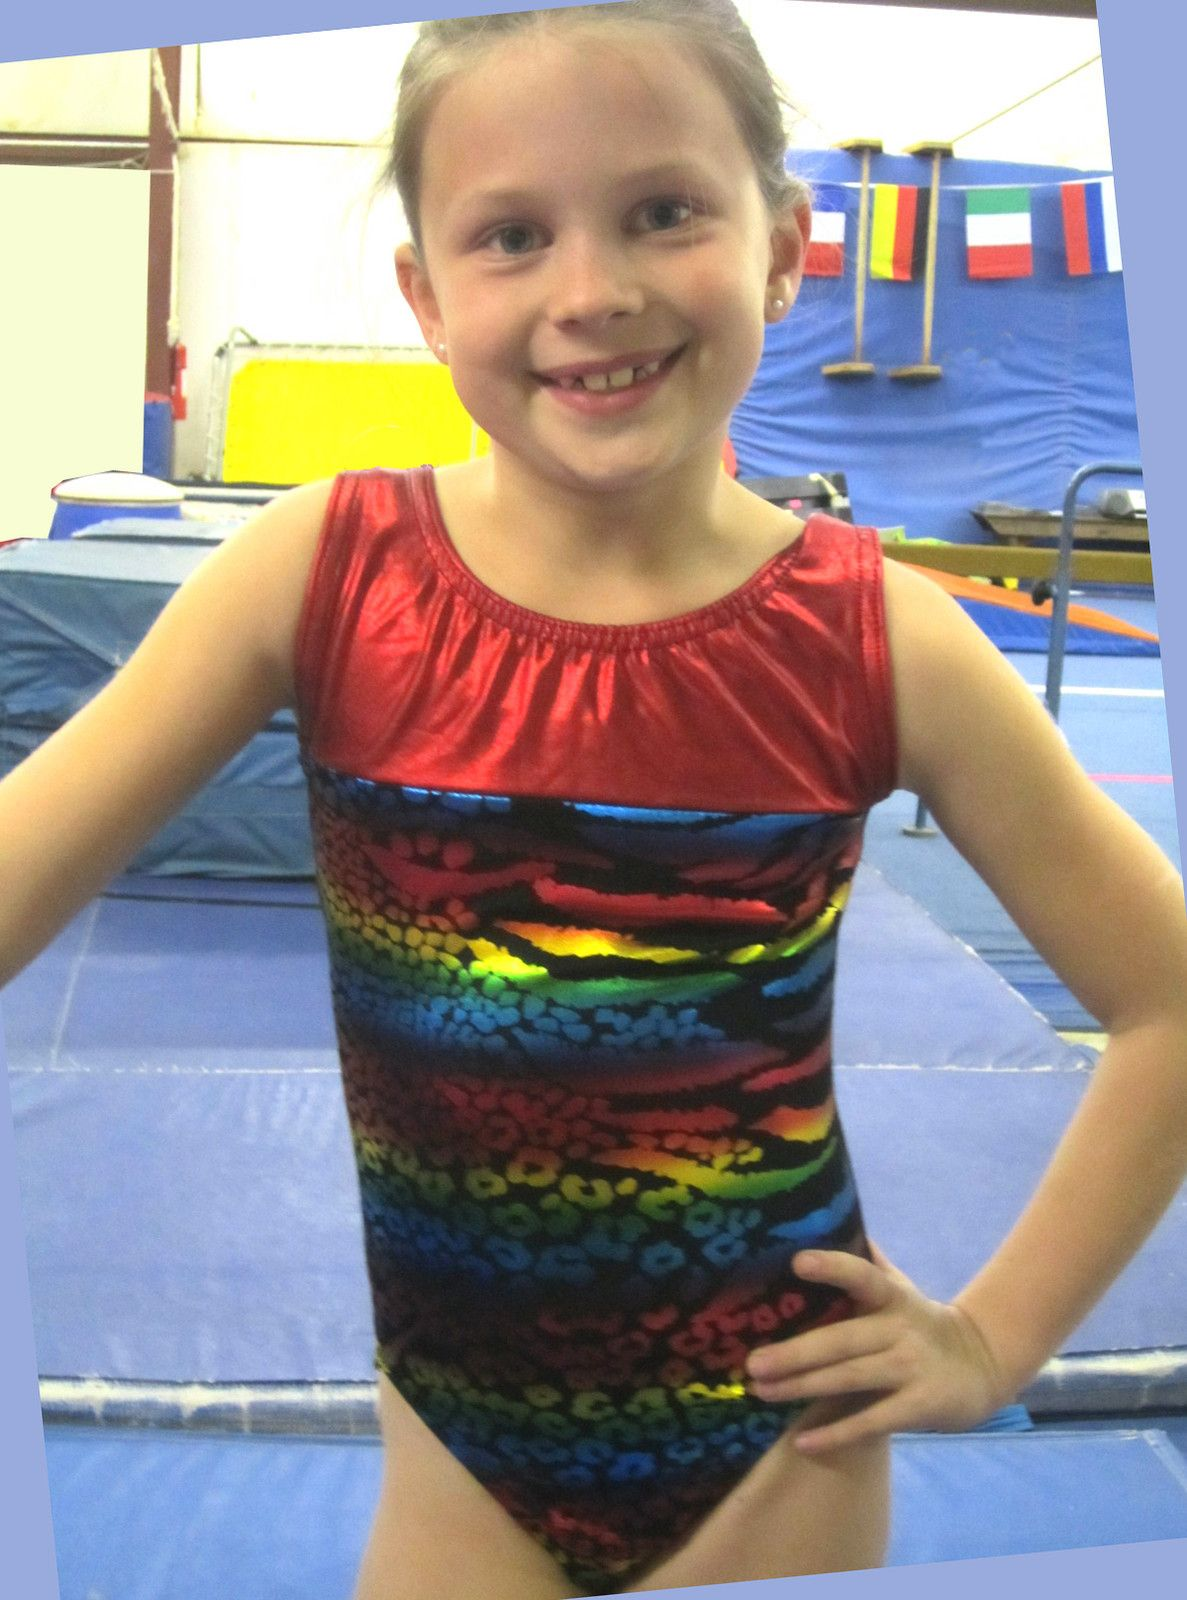 d1e1f931f700 Gymnastics Leotard Girls Sz Child 10 Metallic Rainbow Animal Print ...